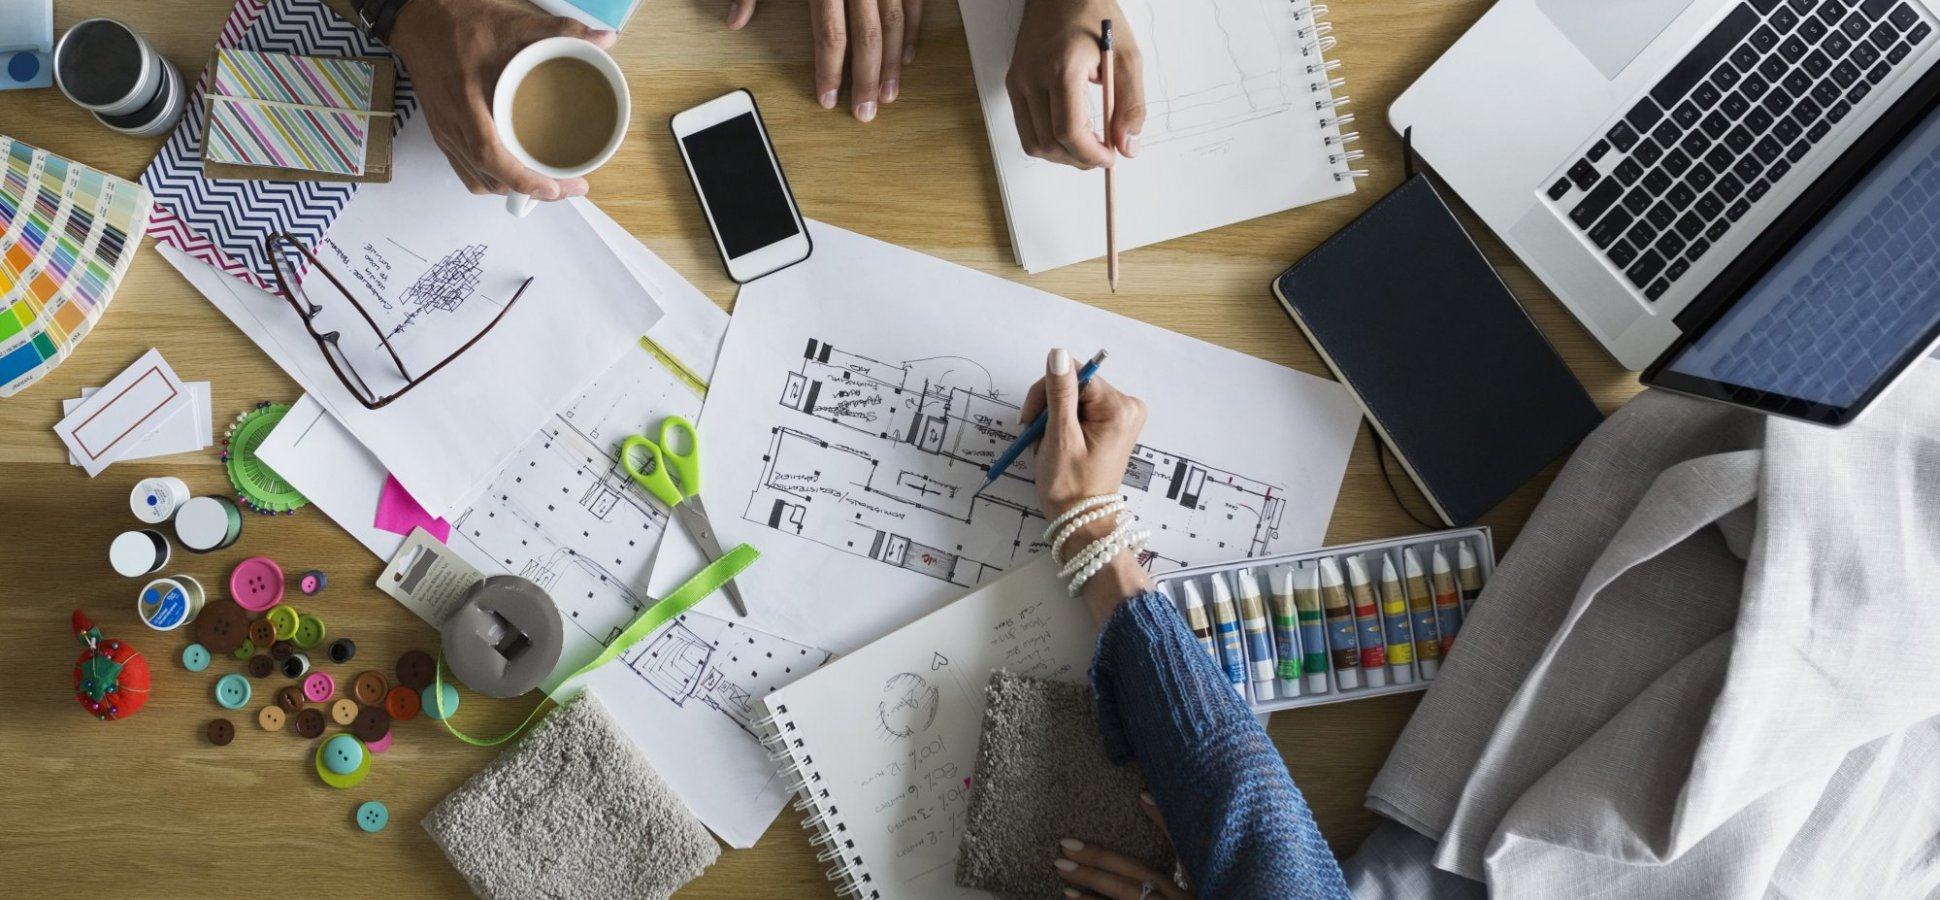 Want to Be More Creative at Work? Read This